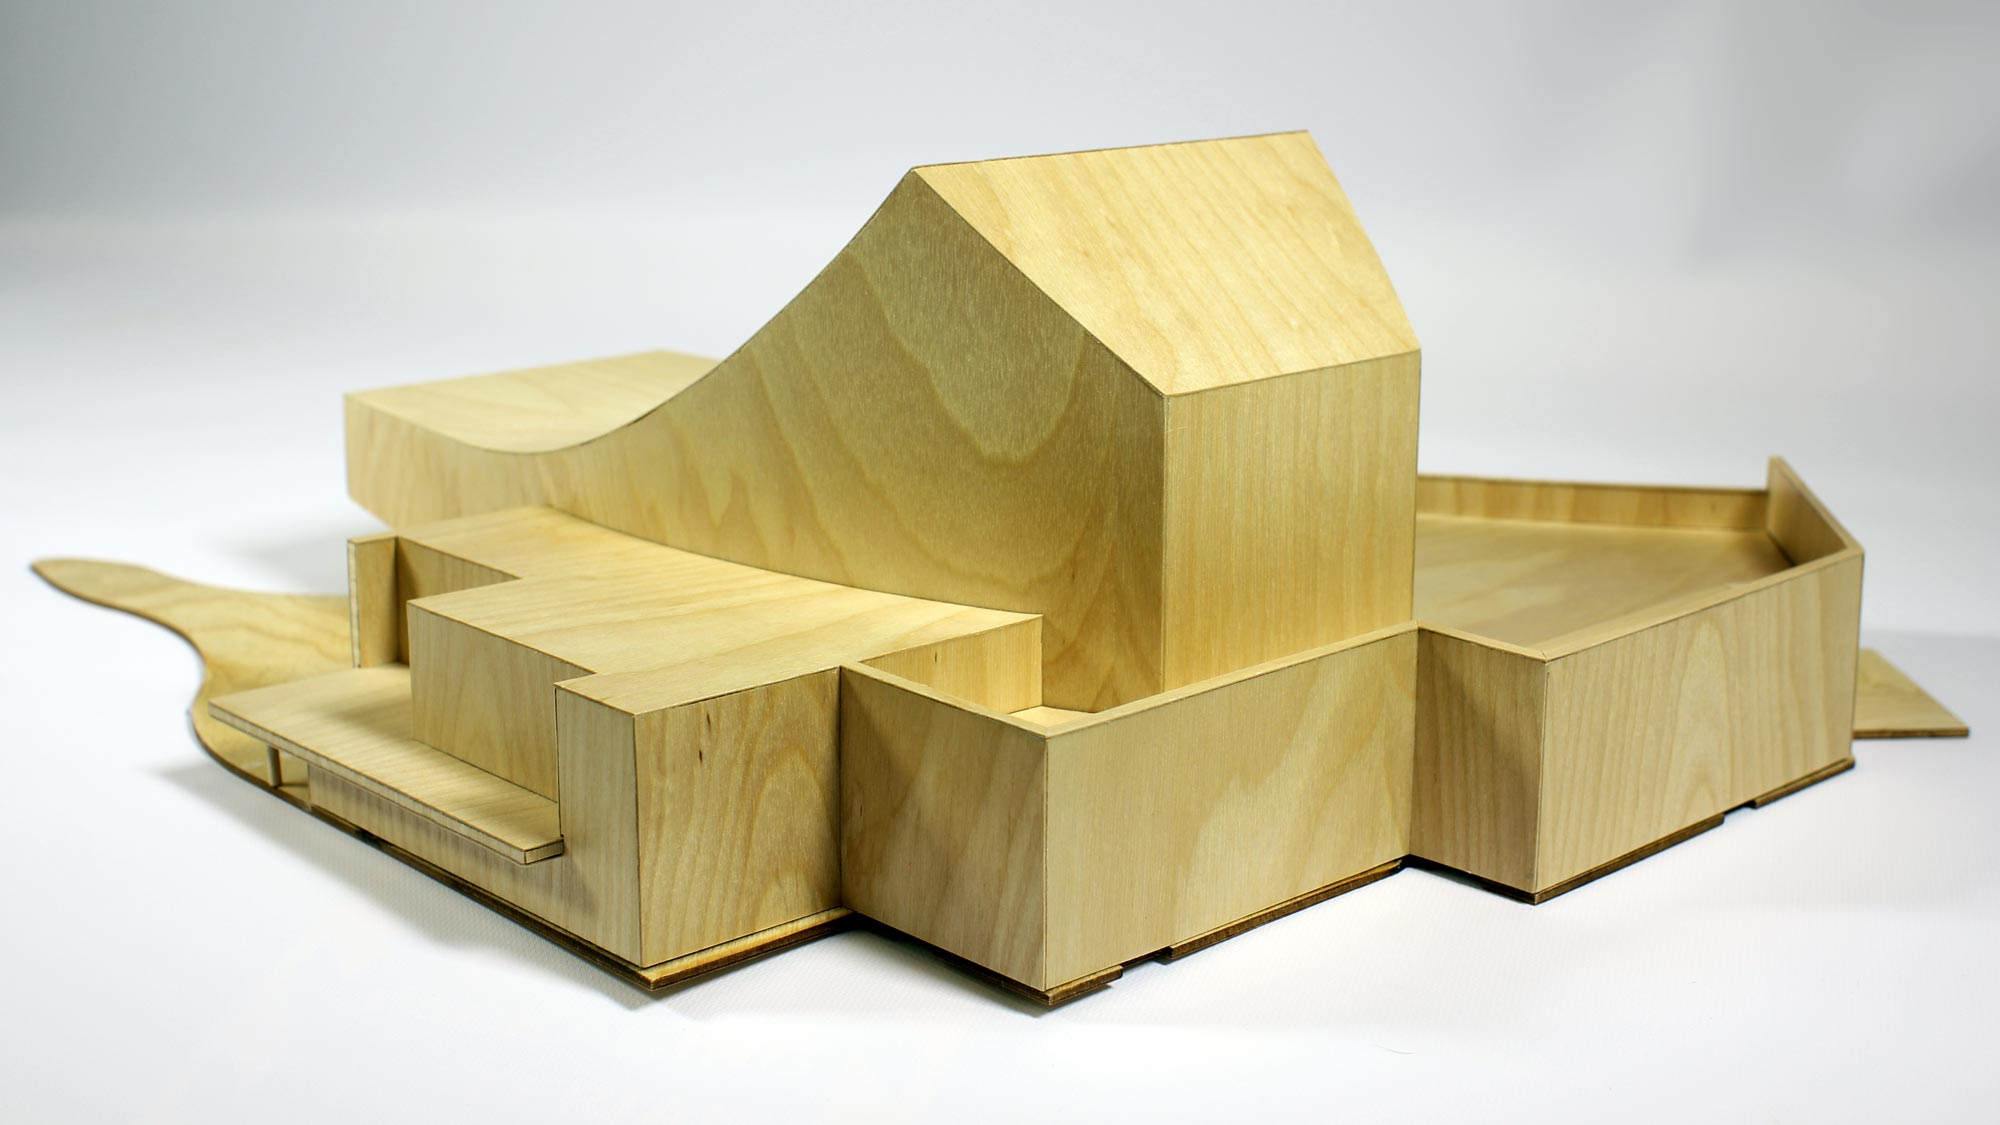 laser cut wooden architectural model